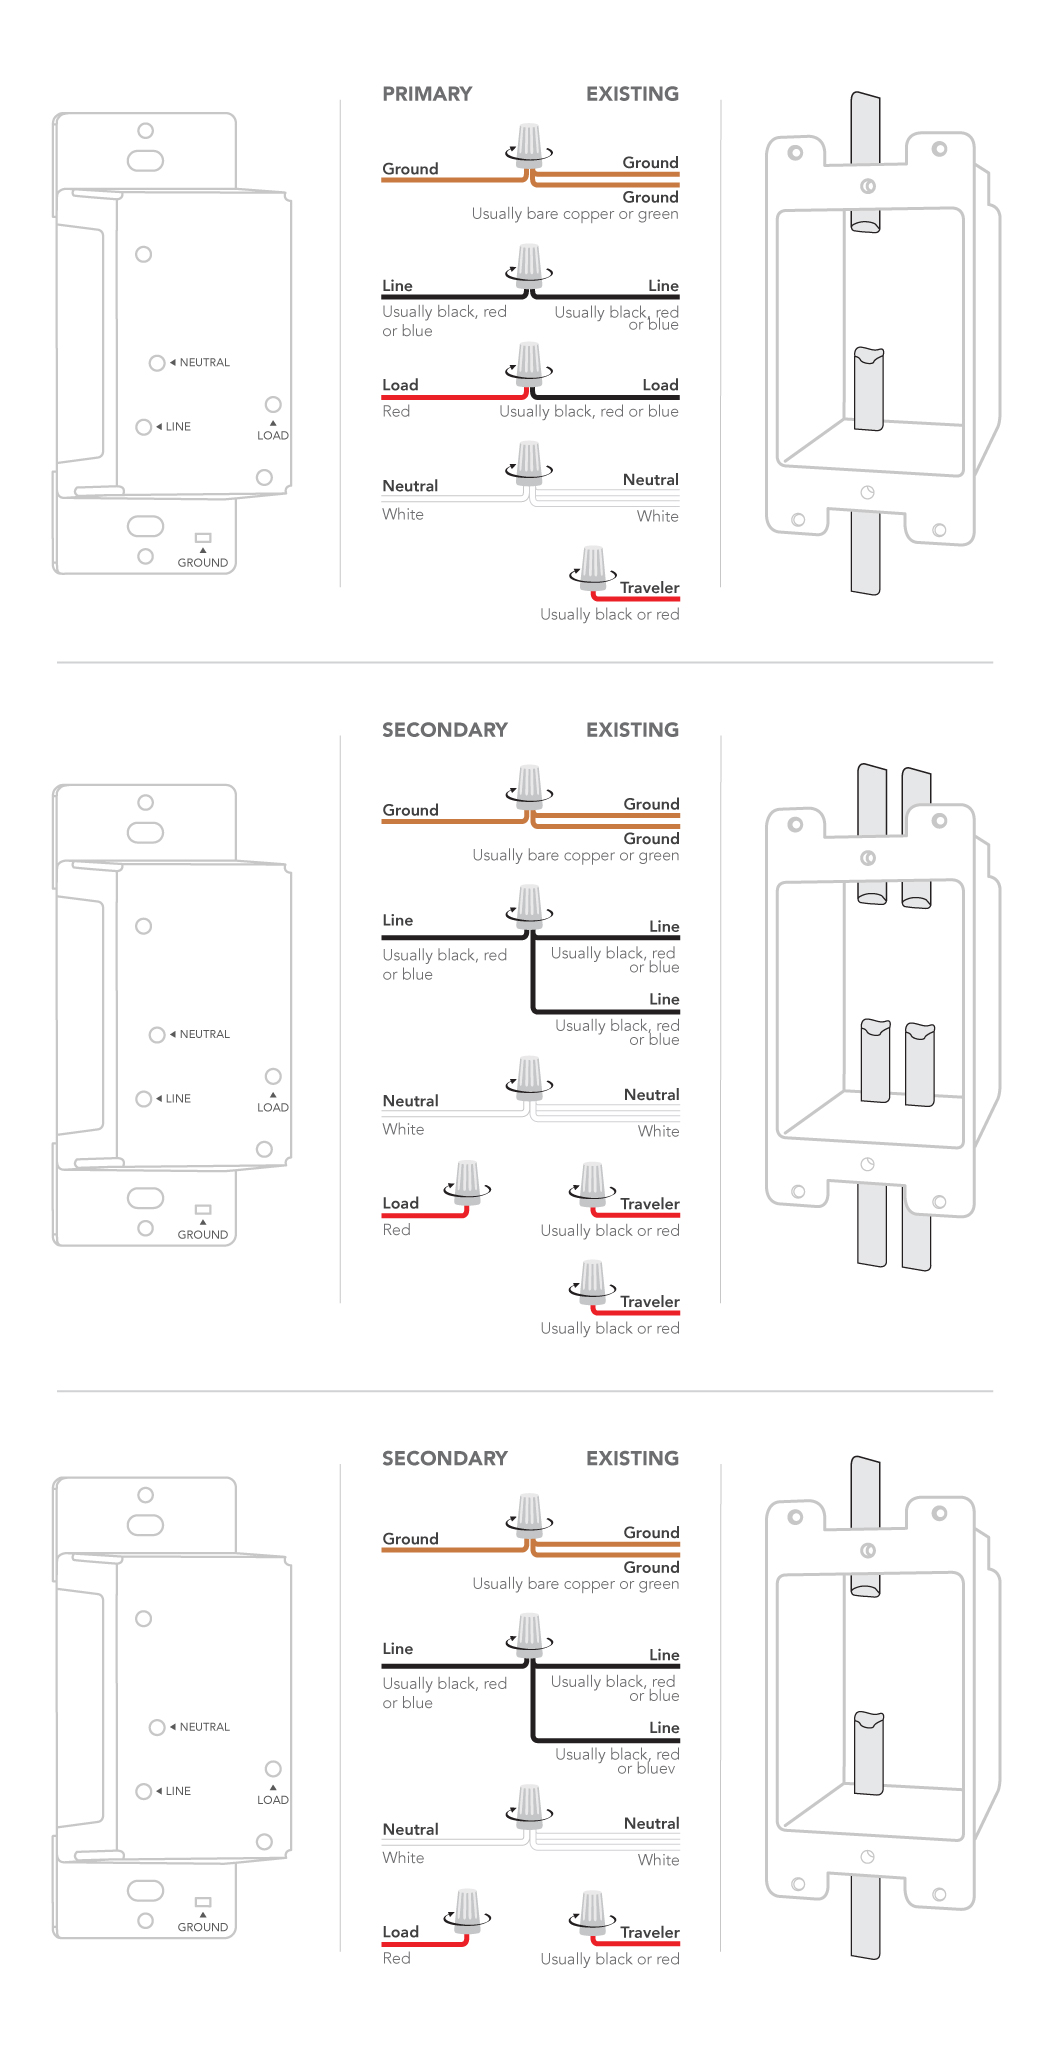 3 Way Dimmer Switch Wiring Diagram : dimmer, switch, wiring, diagram, Installing, Dimmer, Switch:, 4-way, Customer, Support